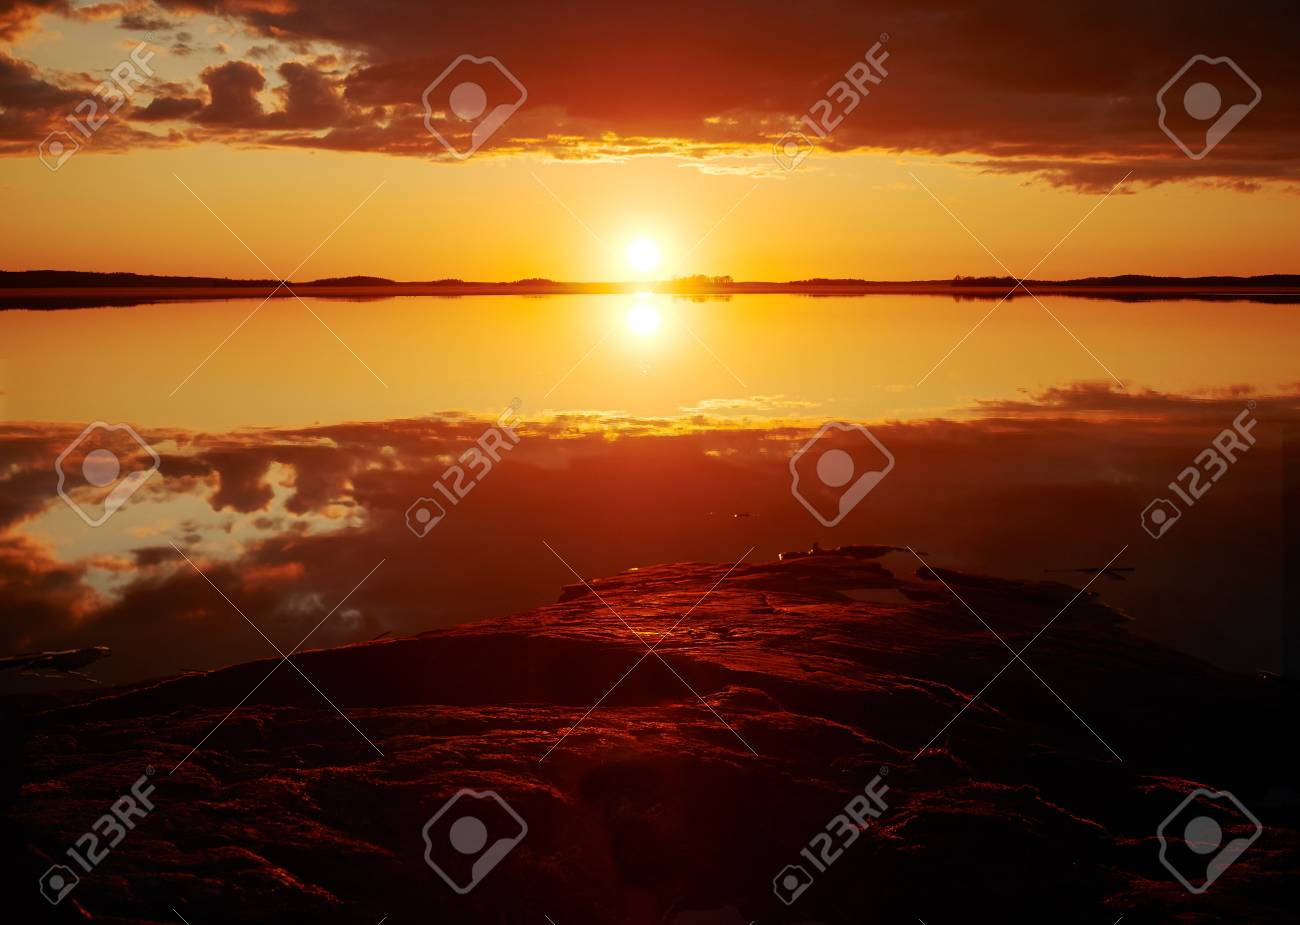 Sunset with crimson red color in the clouds and the rocks on